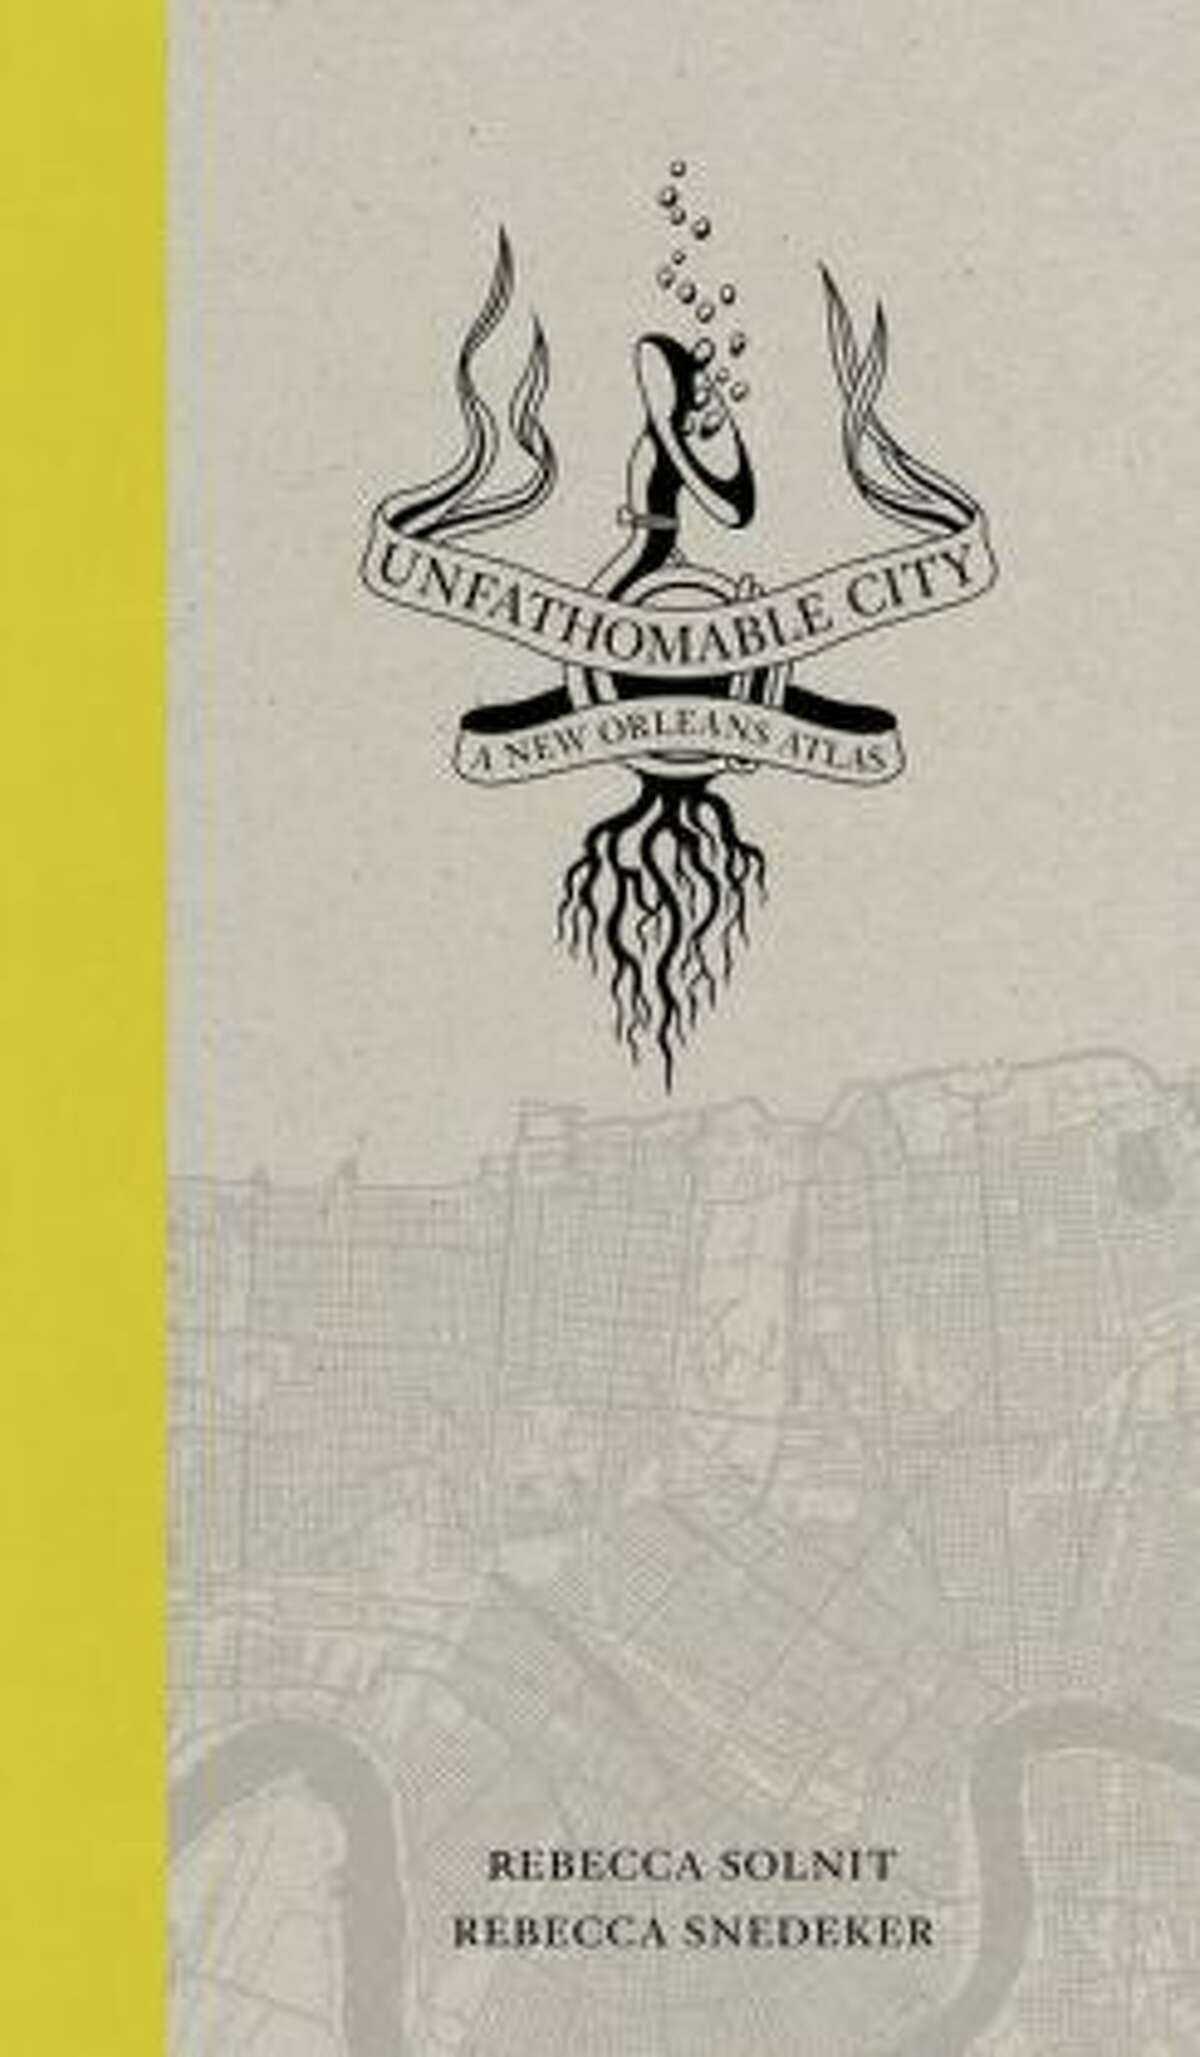 """""""Unfathomable City,"""" by Rebecca Solnit and Rebecca Snedeker"""